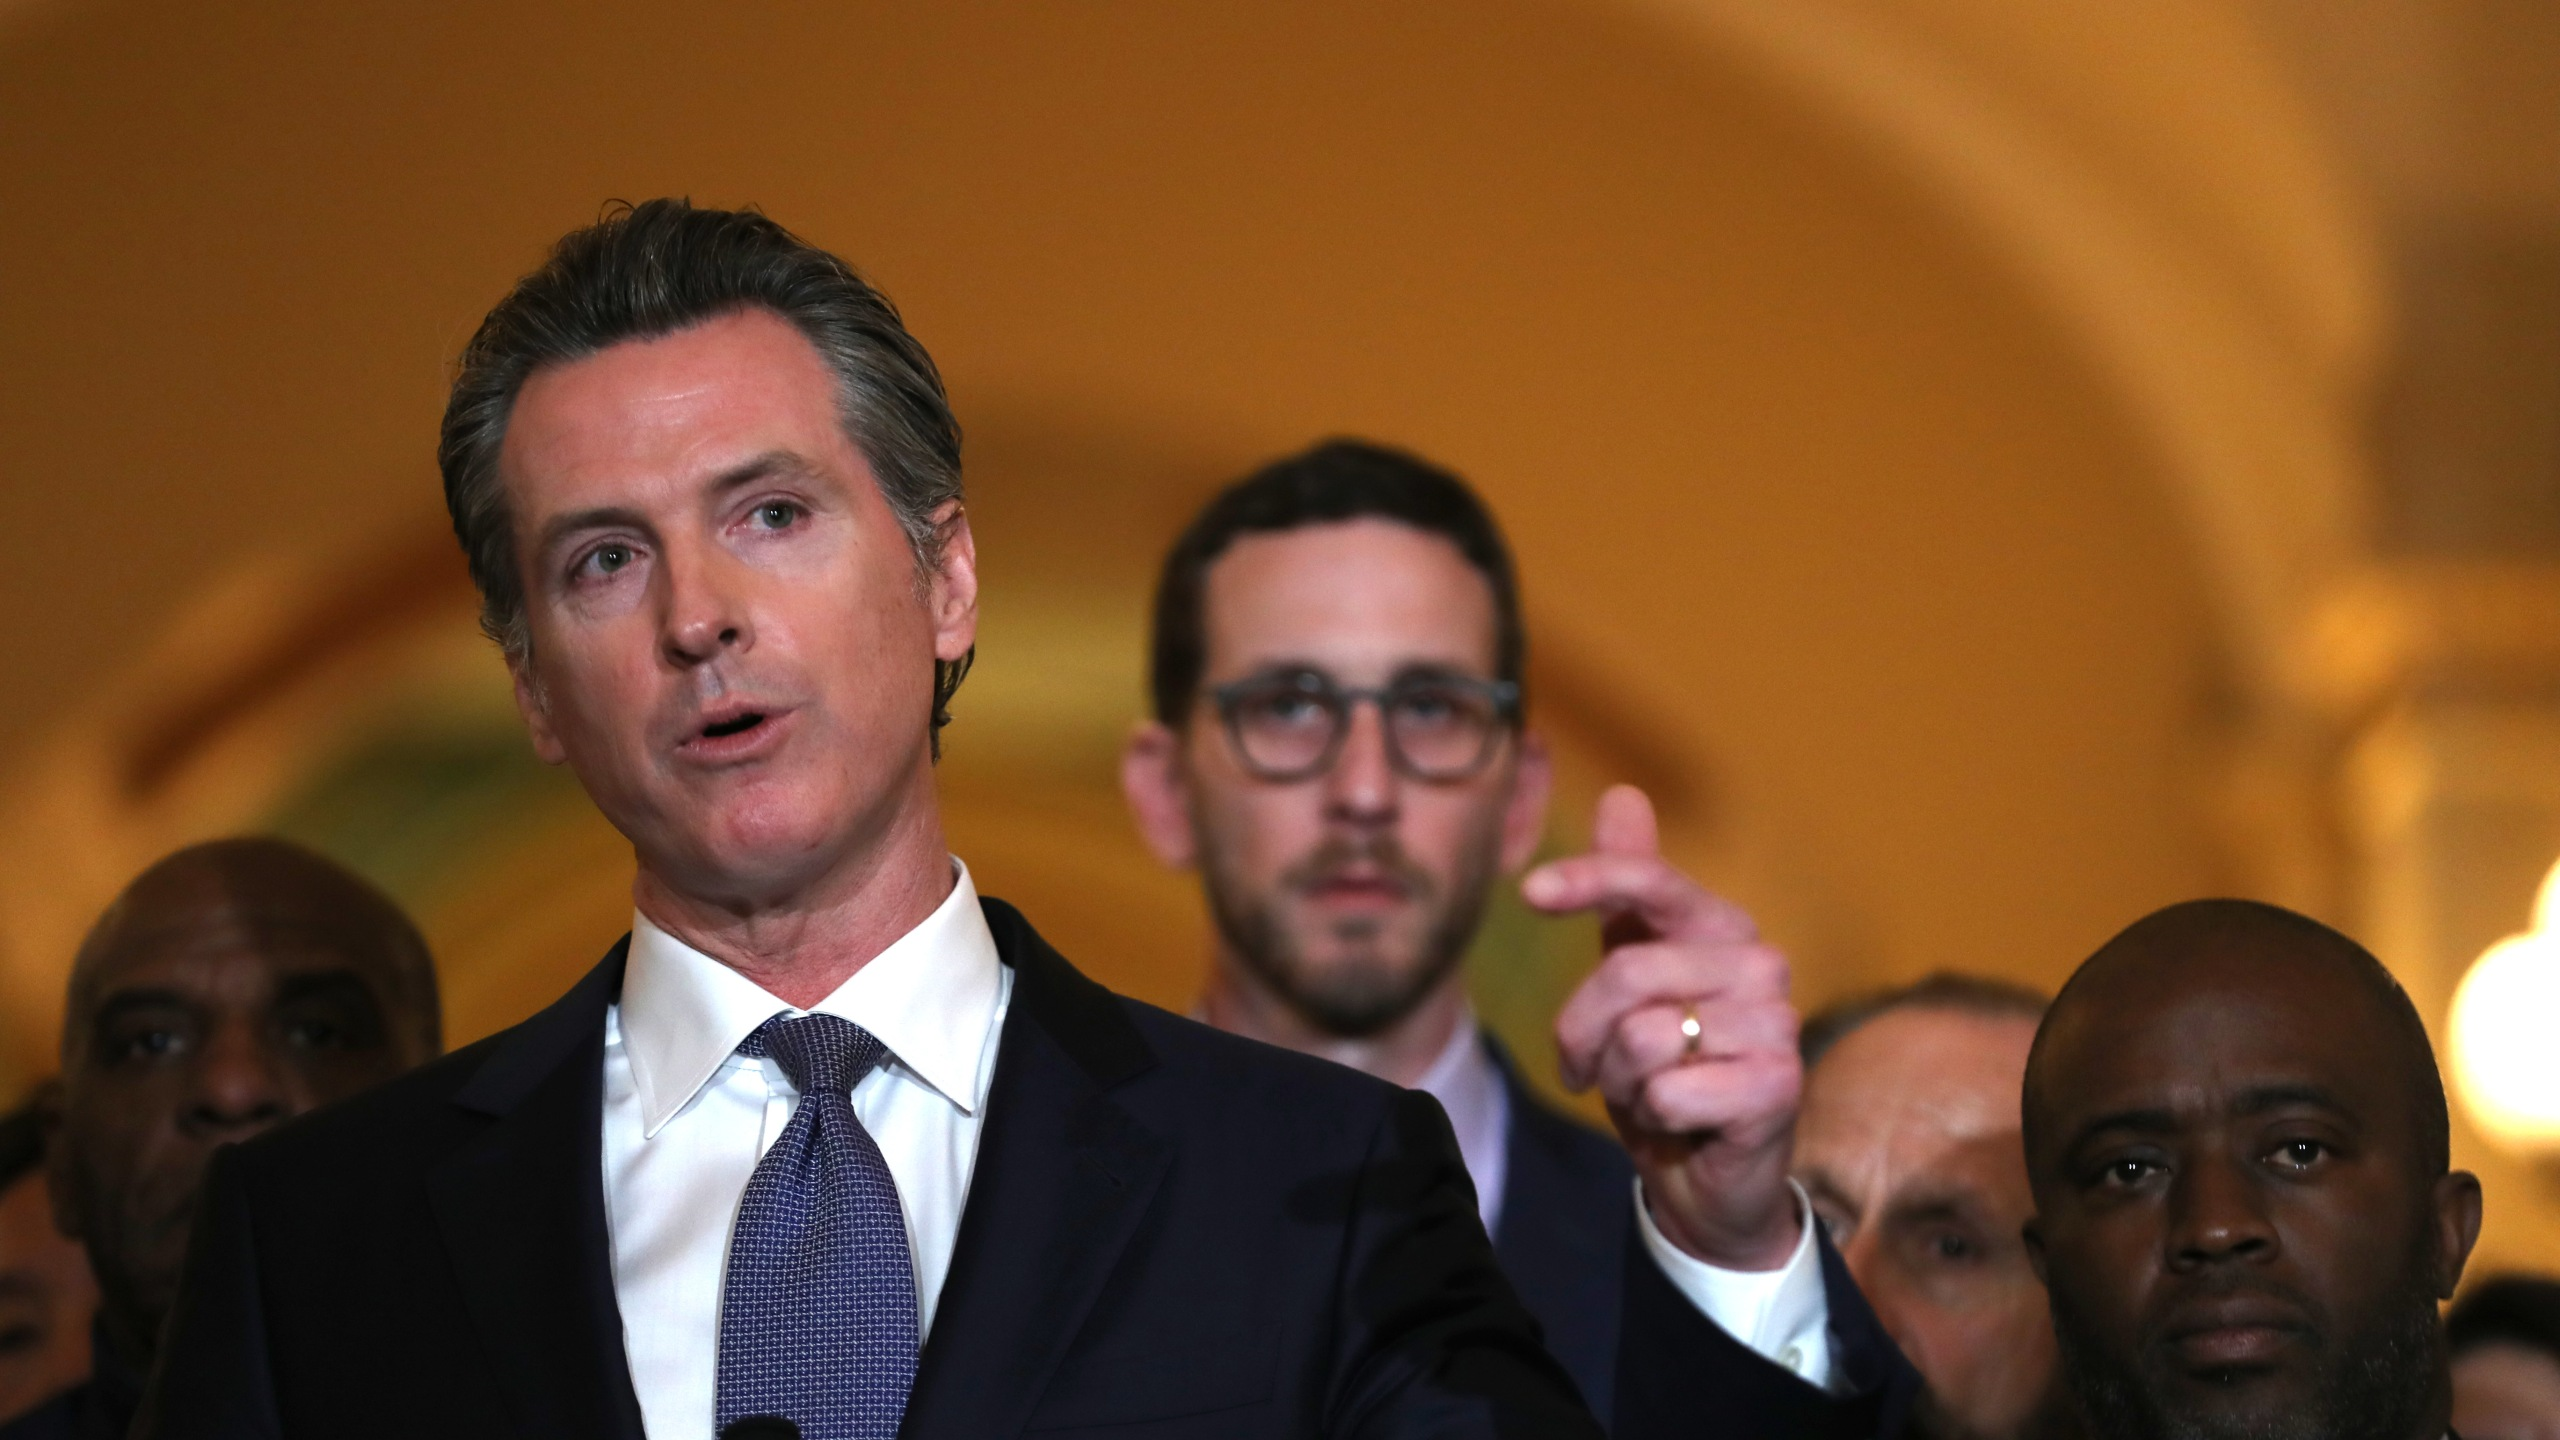 California Gov. Gavin Newsom speaks during a news conference at the state Capitol in Sacramento on March 13, 2019. (Credit: Justin Sullivan / Getty Images)